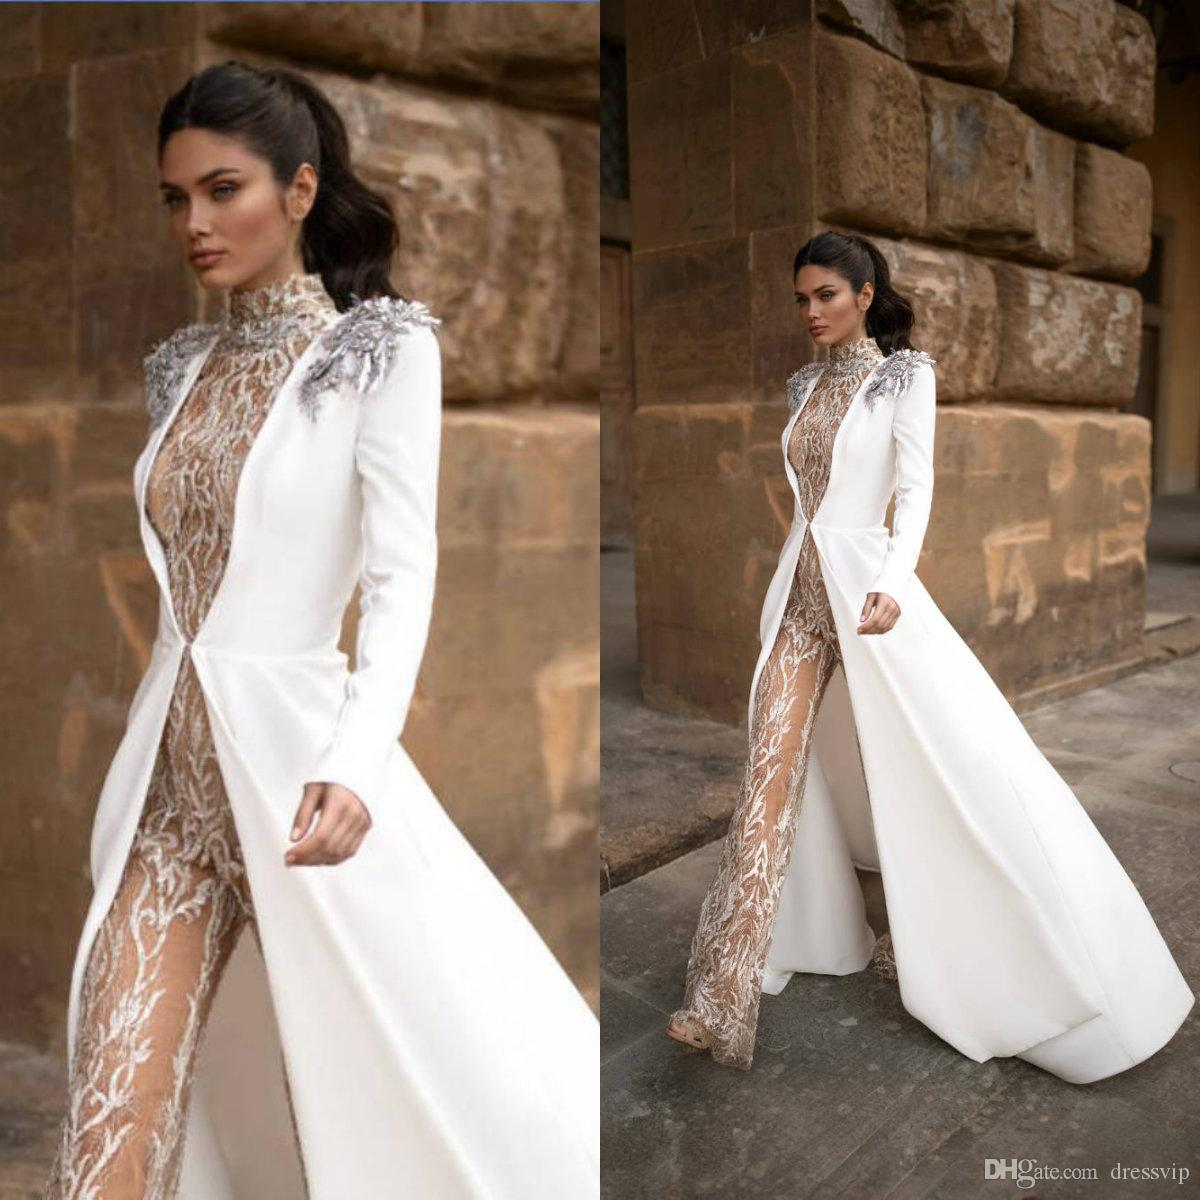 Milla Nova Wedding Jumpsuits With Long Jacket 2020 High Neck Lace Appliqued Bead Lace Bridal Dress Sweep Train Illusion Beach Wedding Gowns